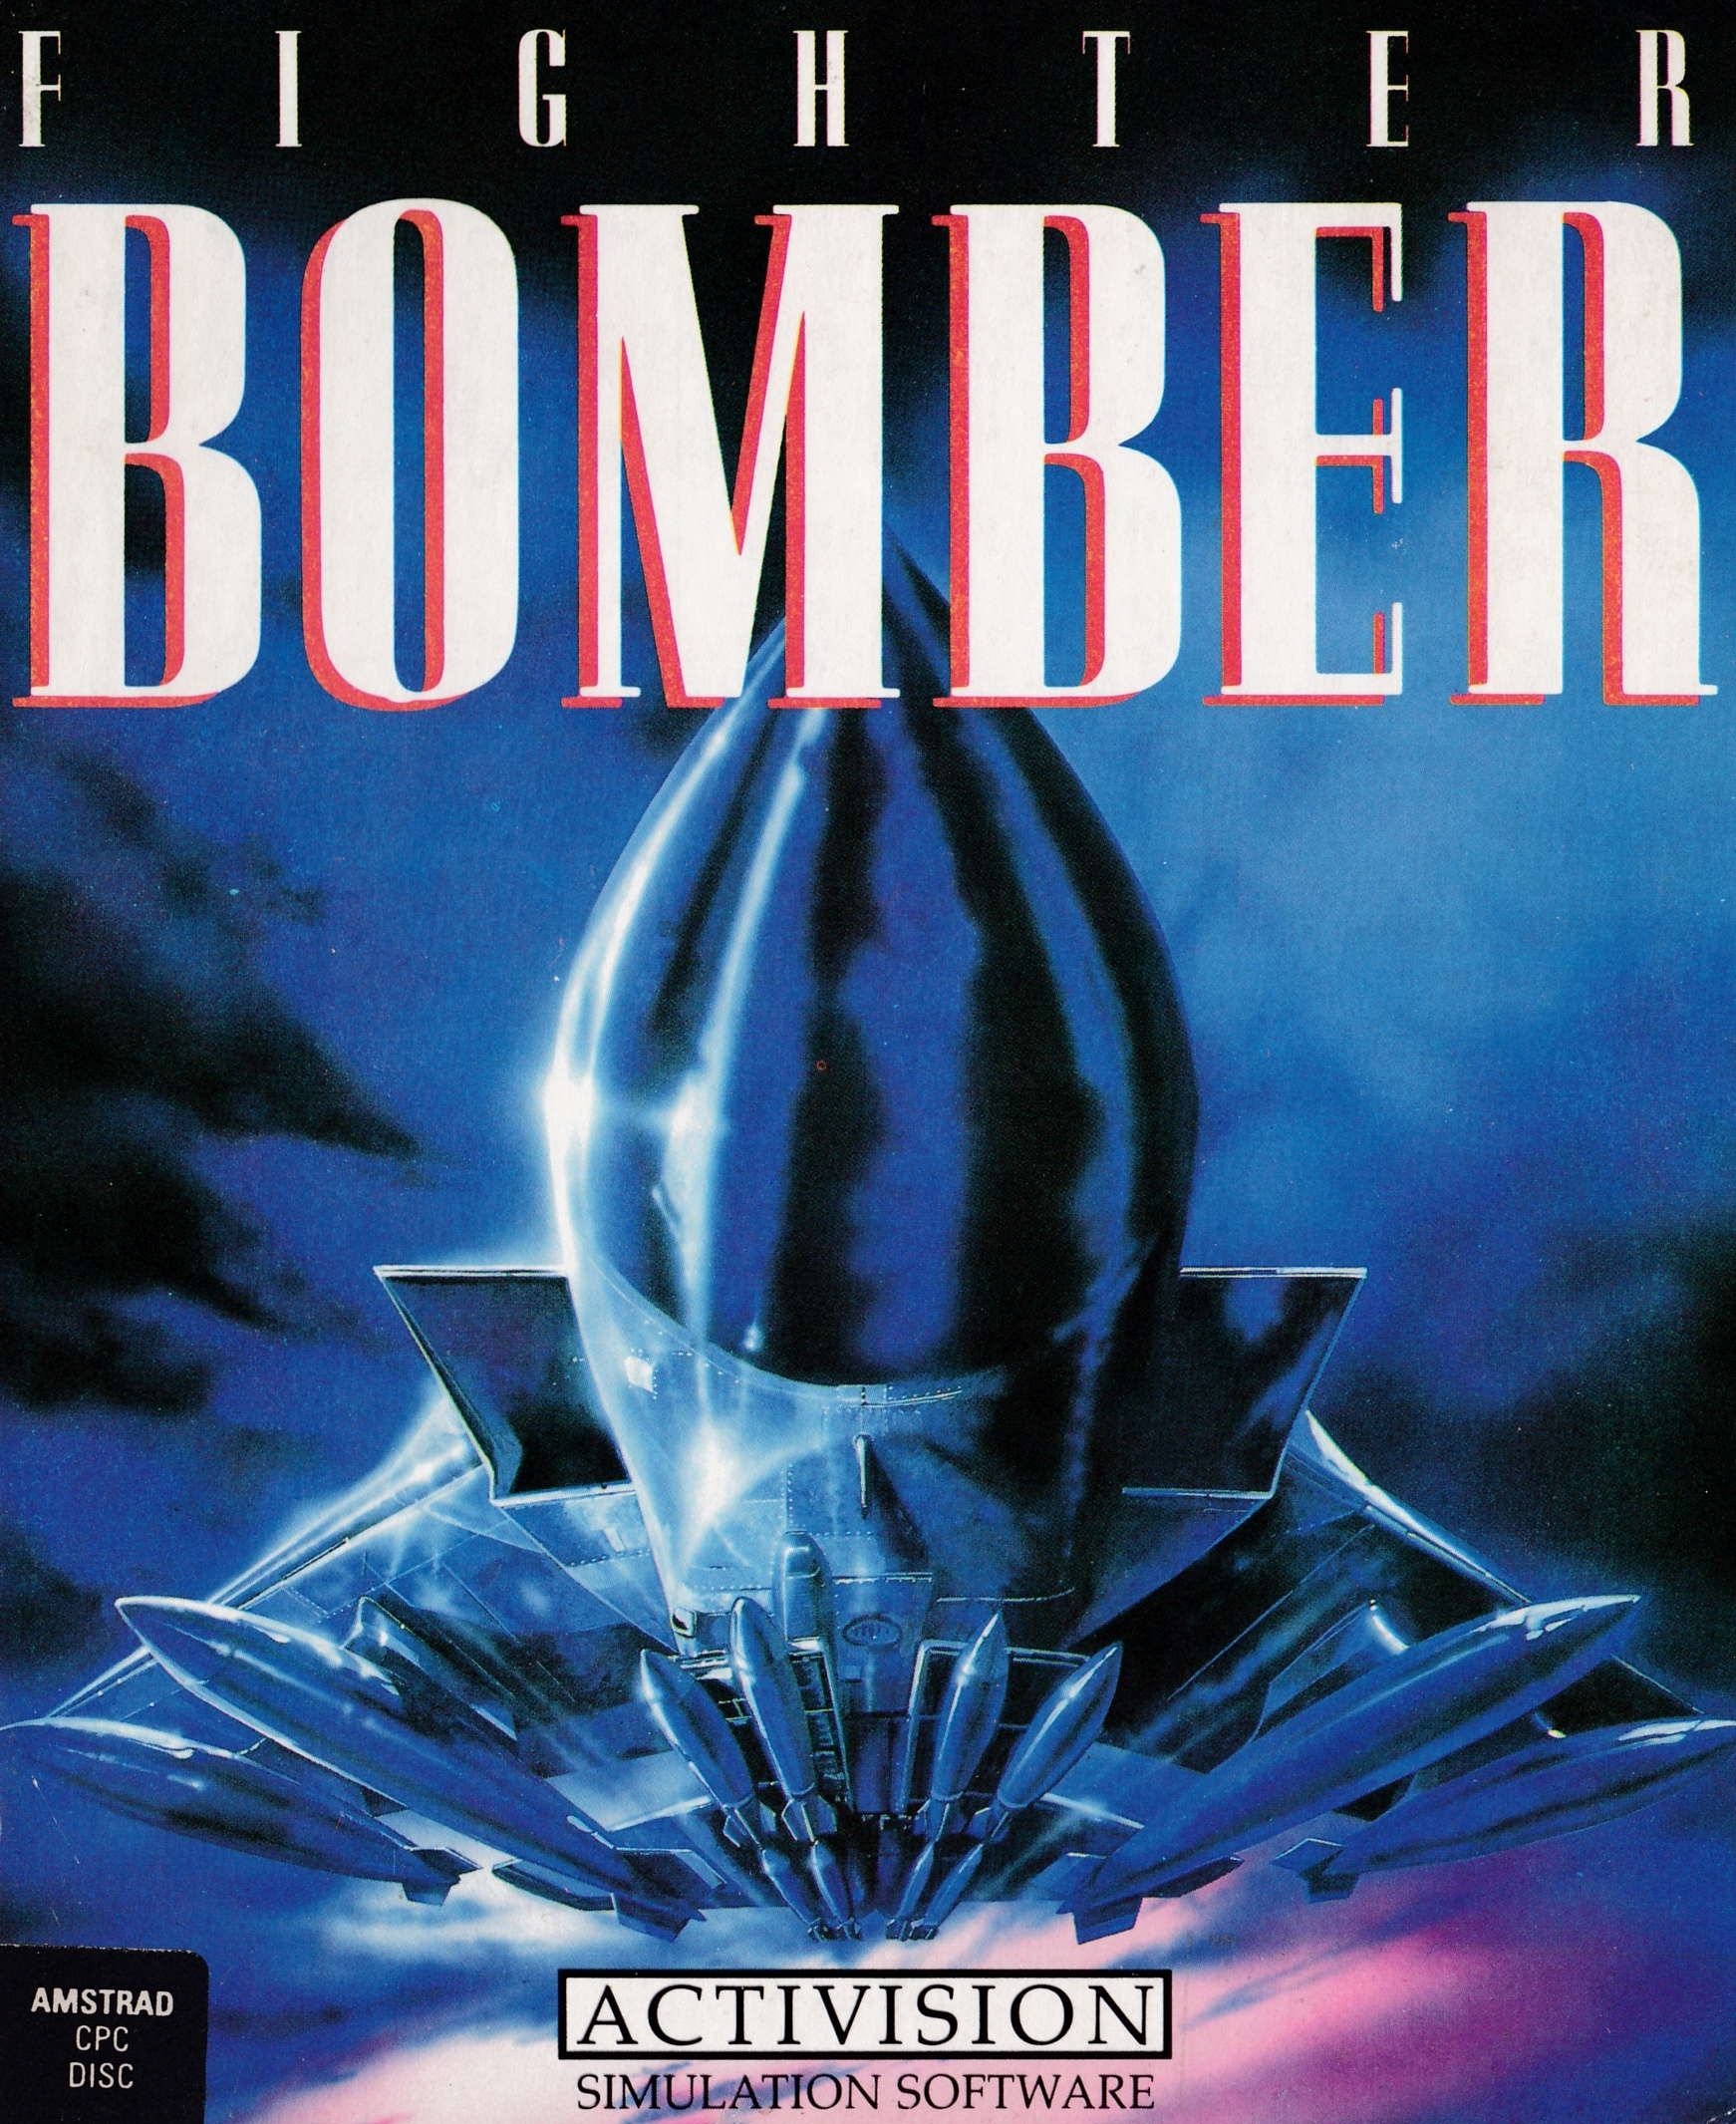 cover of the Amstrad CPC game Fighter Bomber  by GameBase CPC